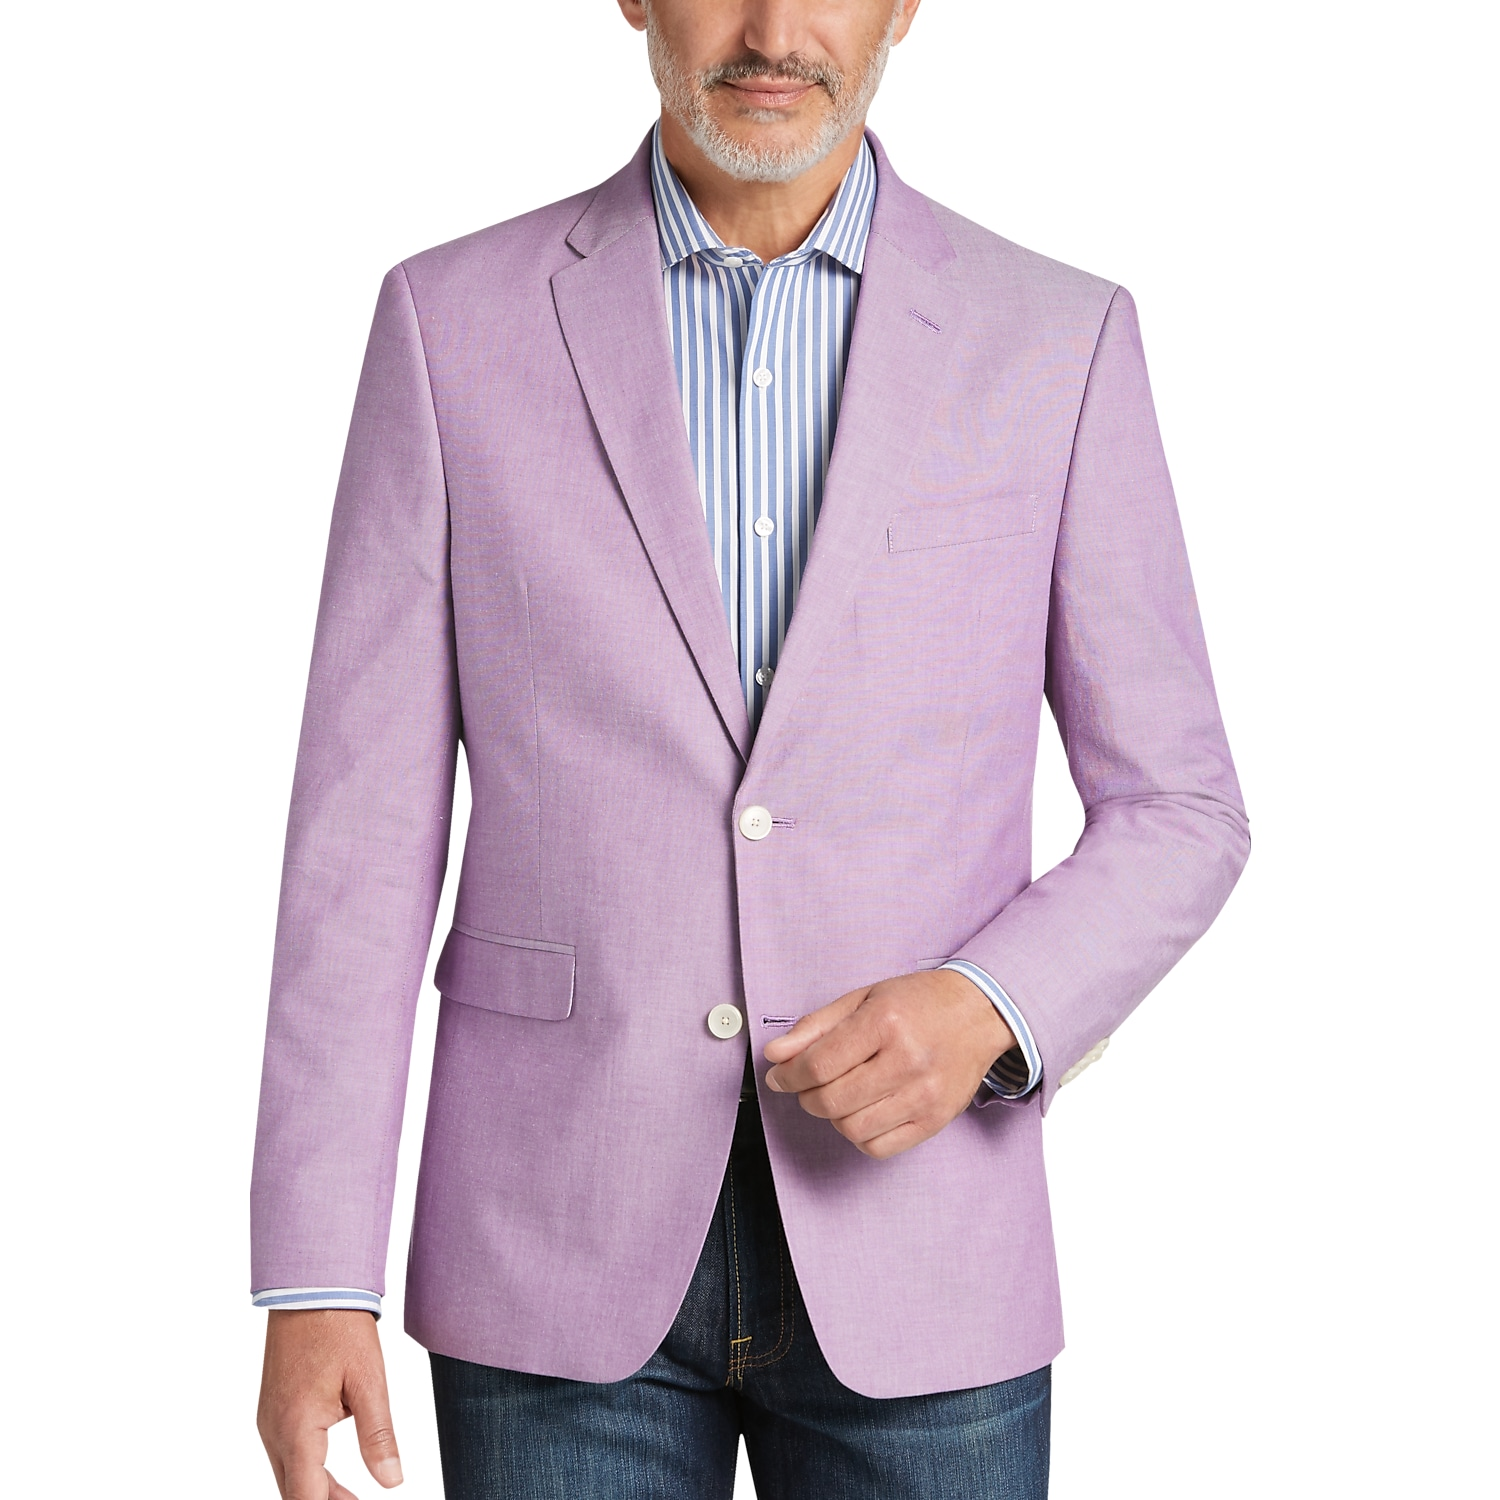 Sport Coats - Shop Top Designer Sport Jackets & Coats | Men's ...